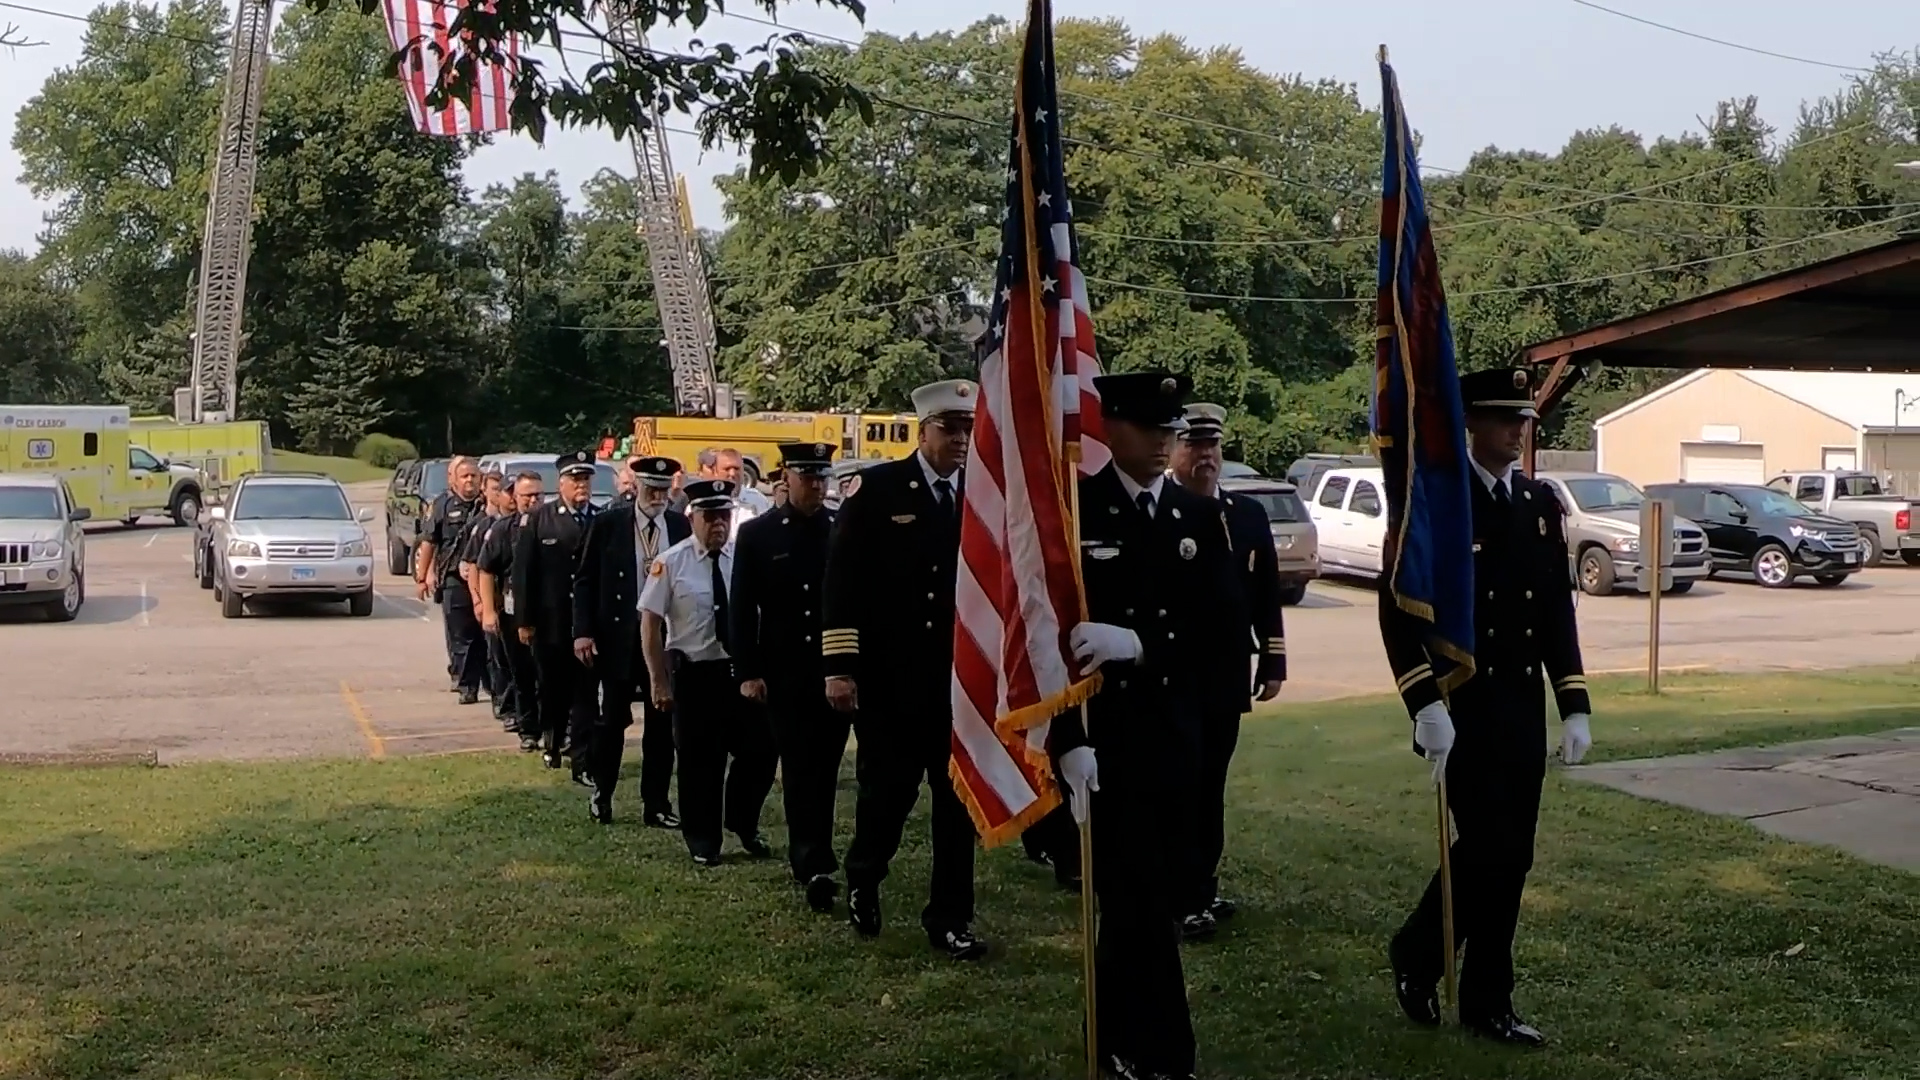 Edwardsville and Glen Carbon Fire Departments Hold 9/11 Memorial Ceremony